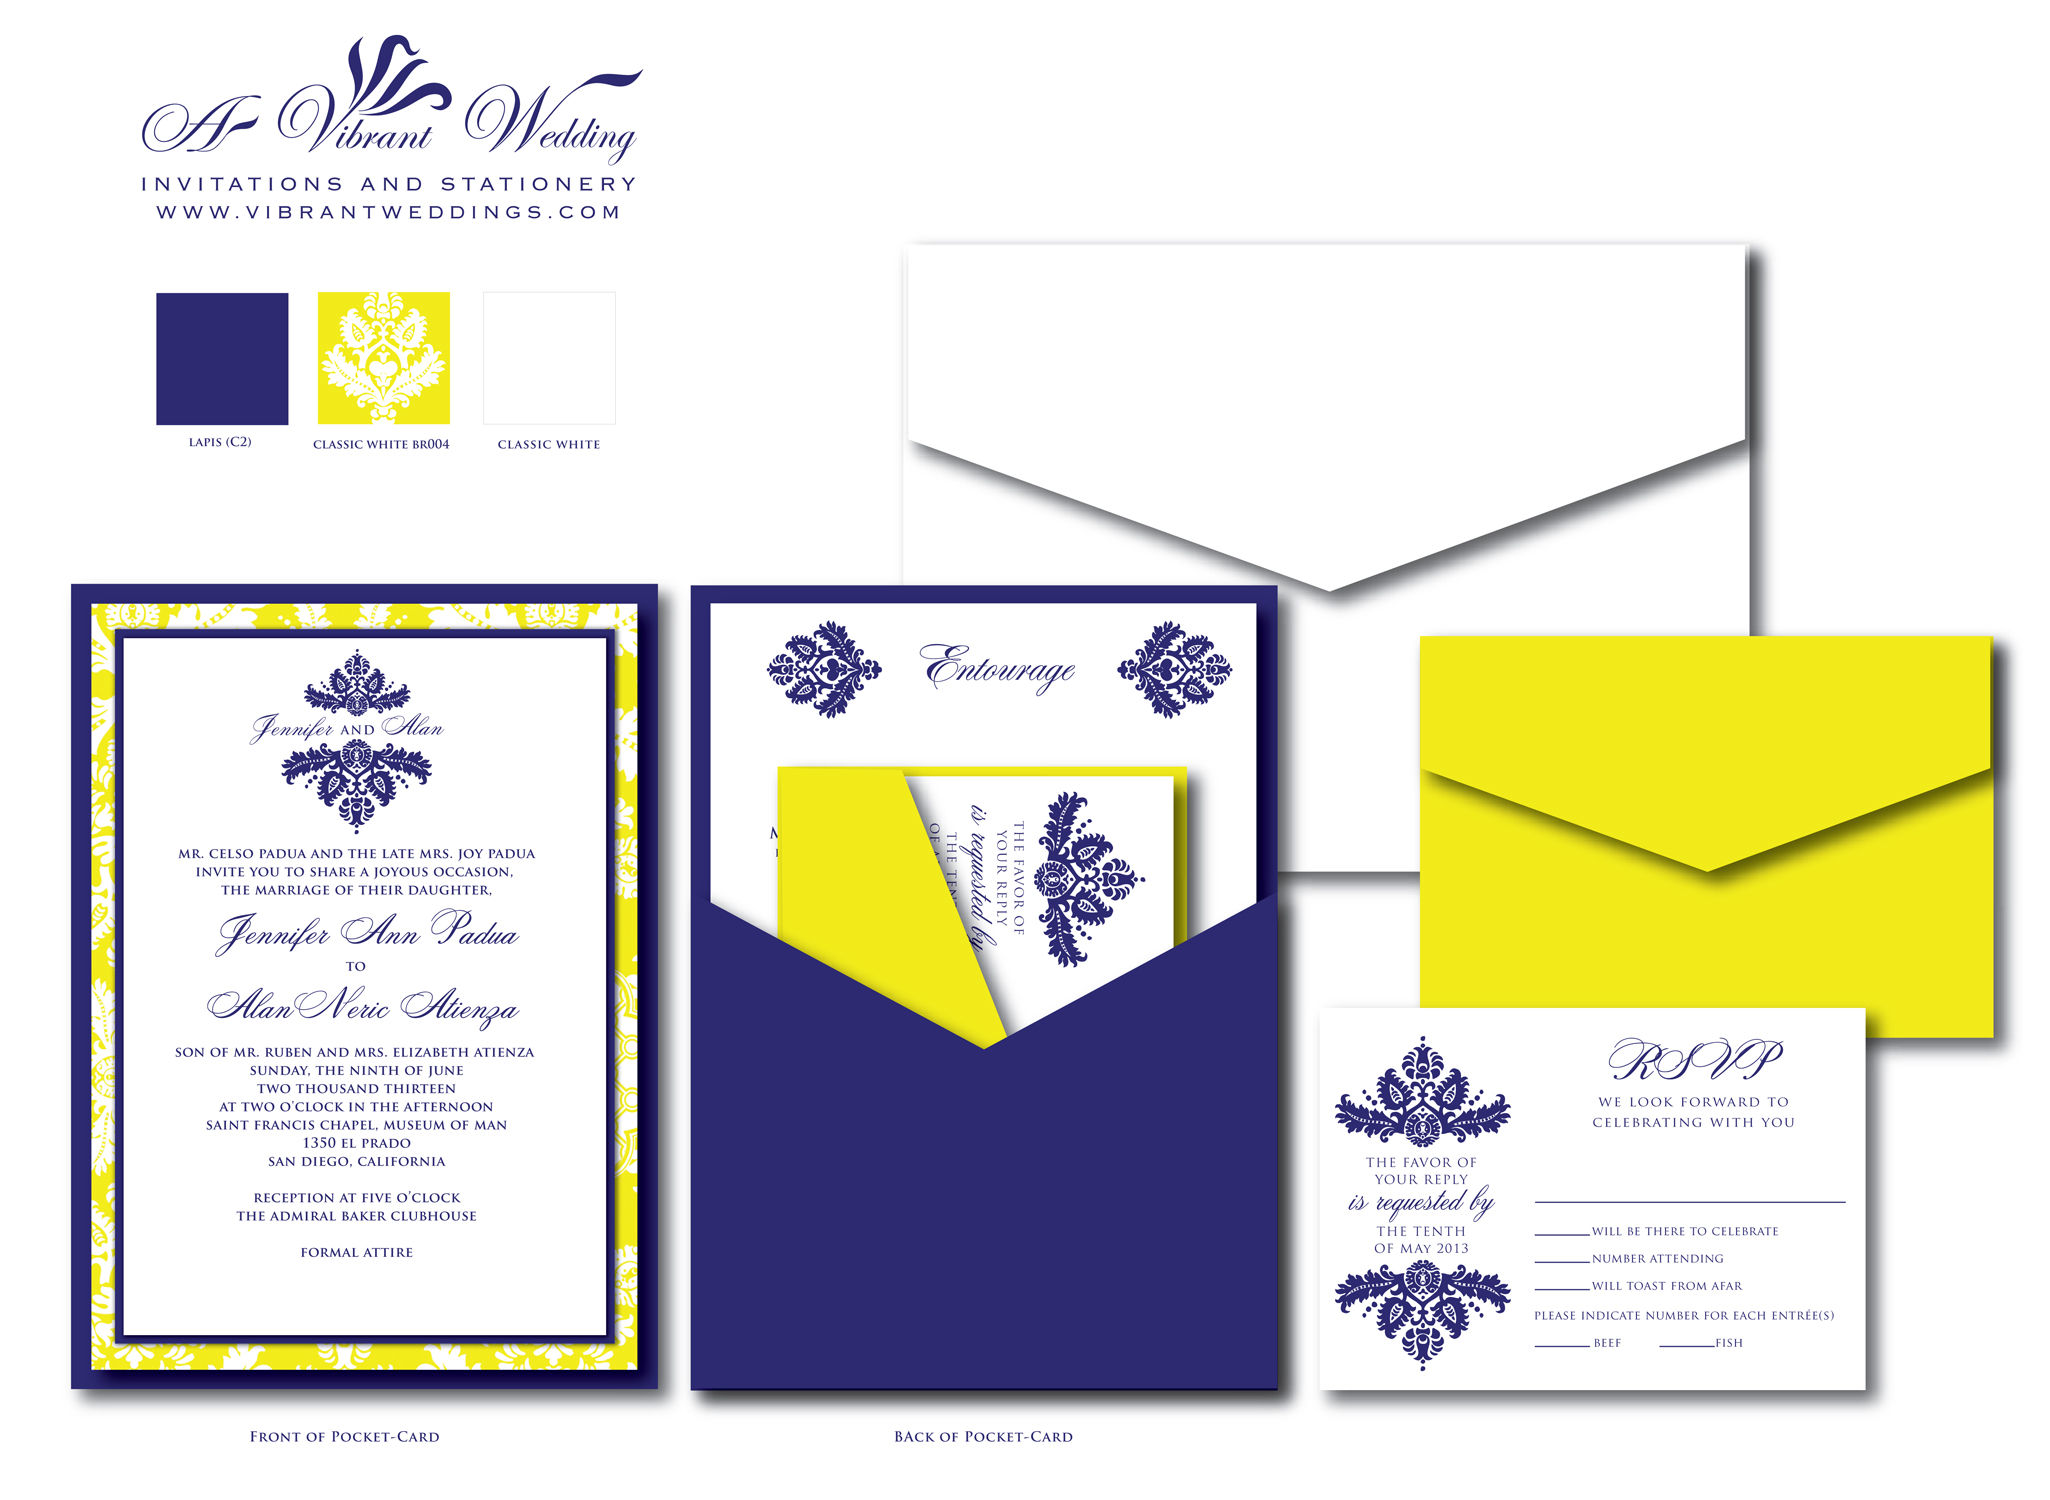 Monogram Designs | A Vibrant Wedding Web Blog